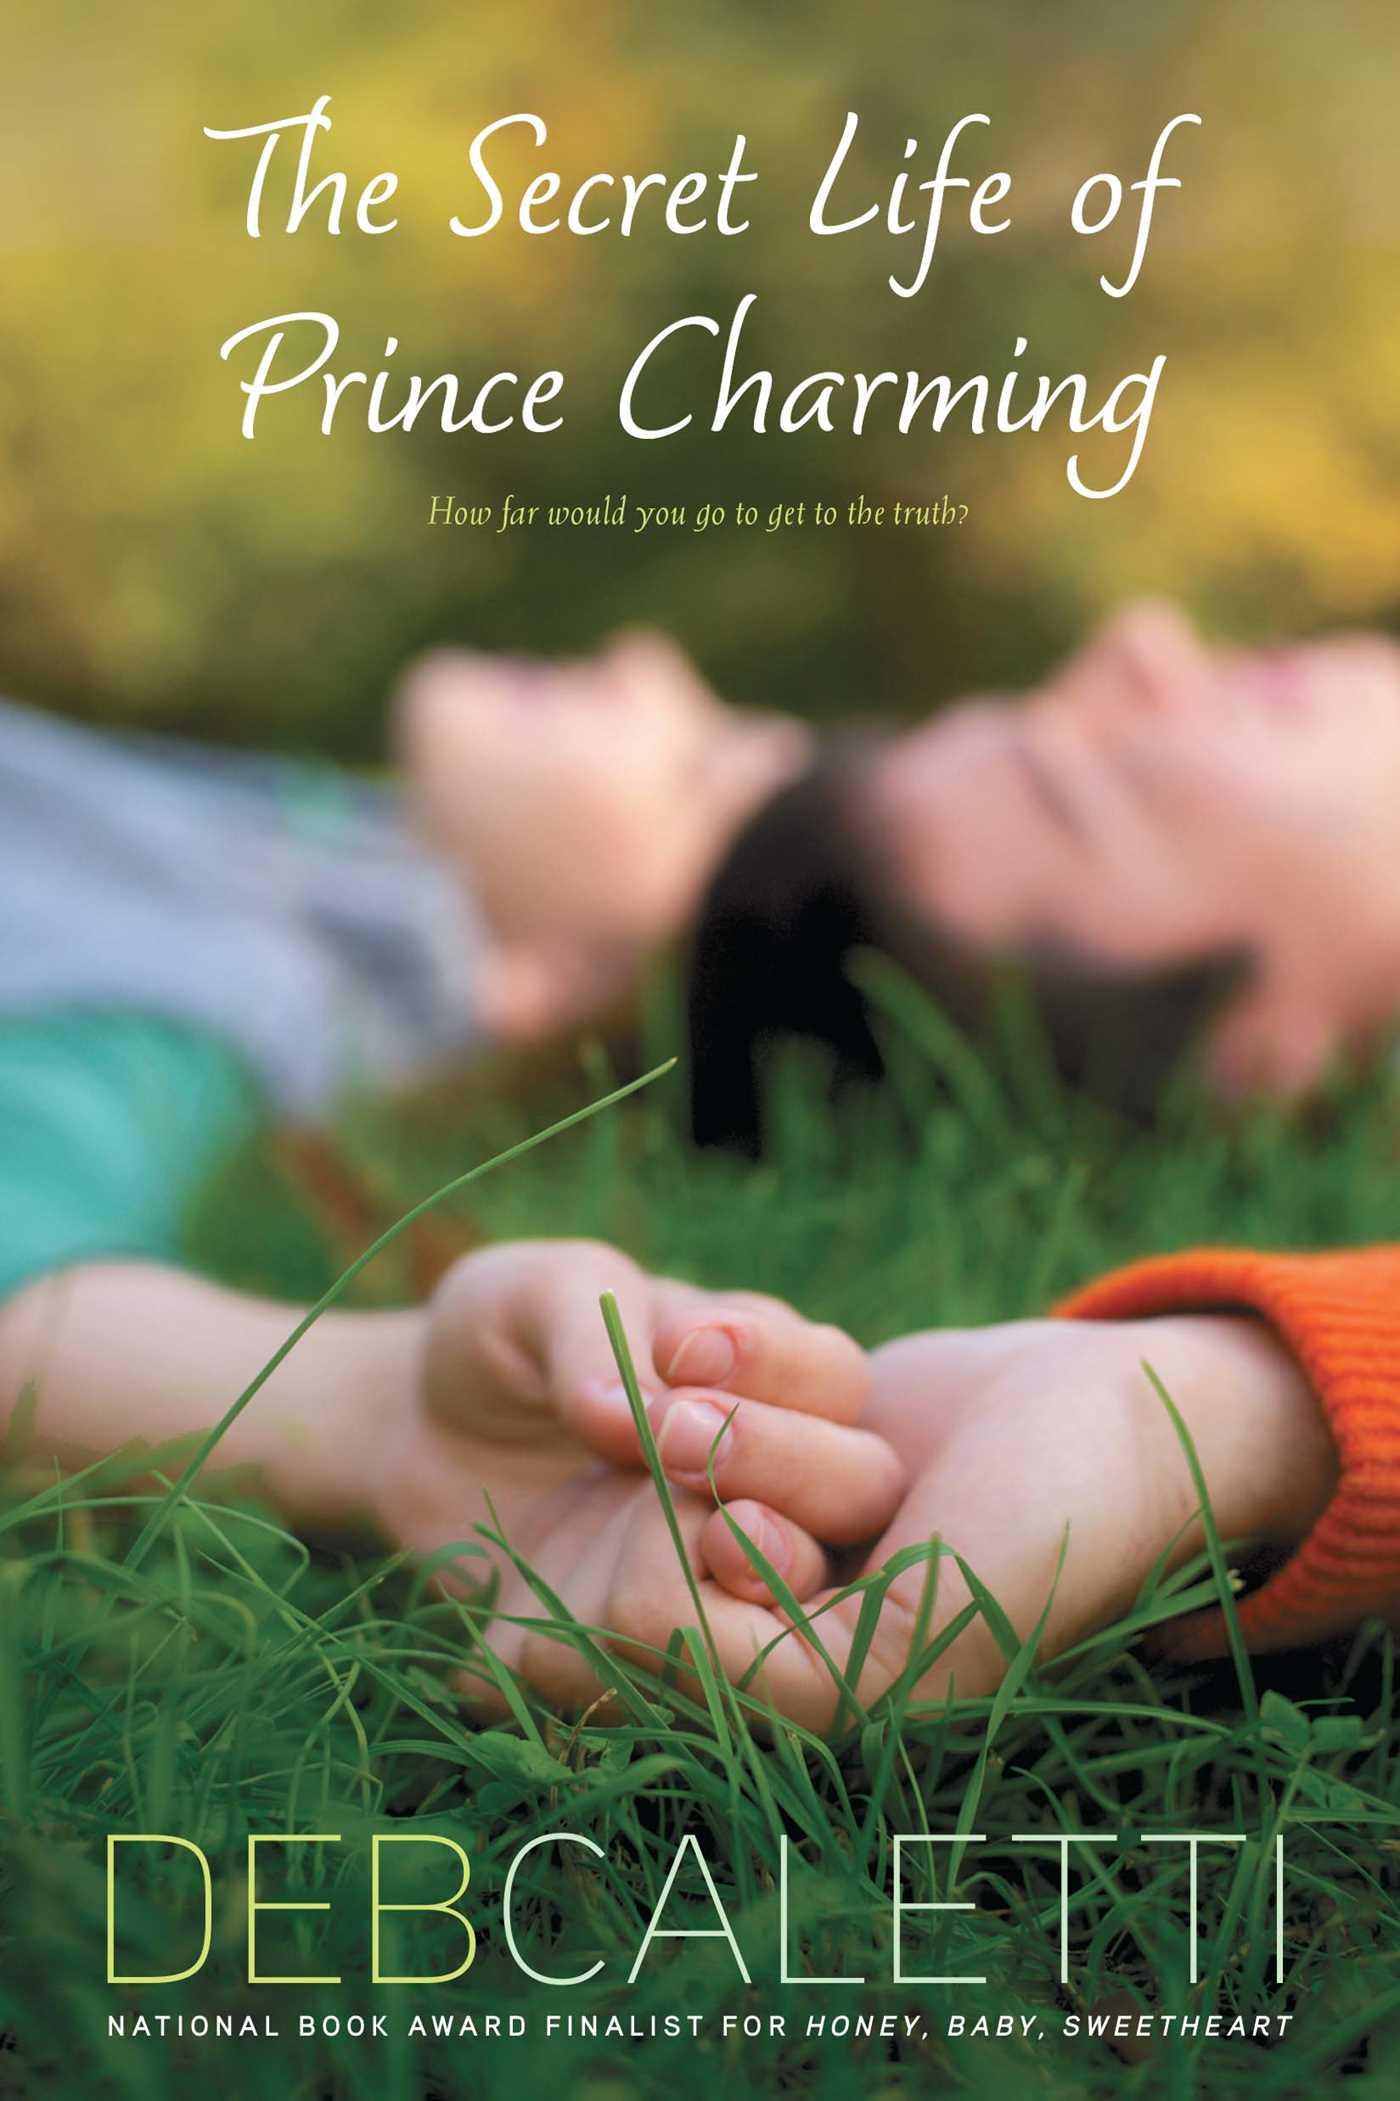 The secret life of prince charming 9781416959410 hr